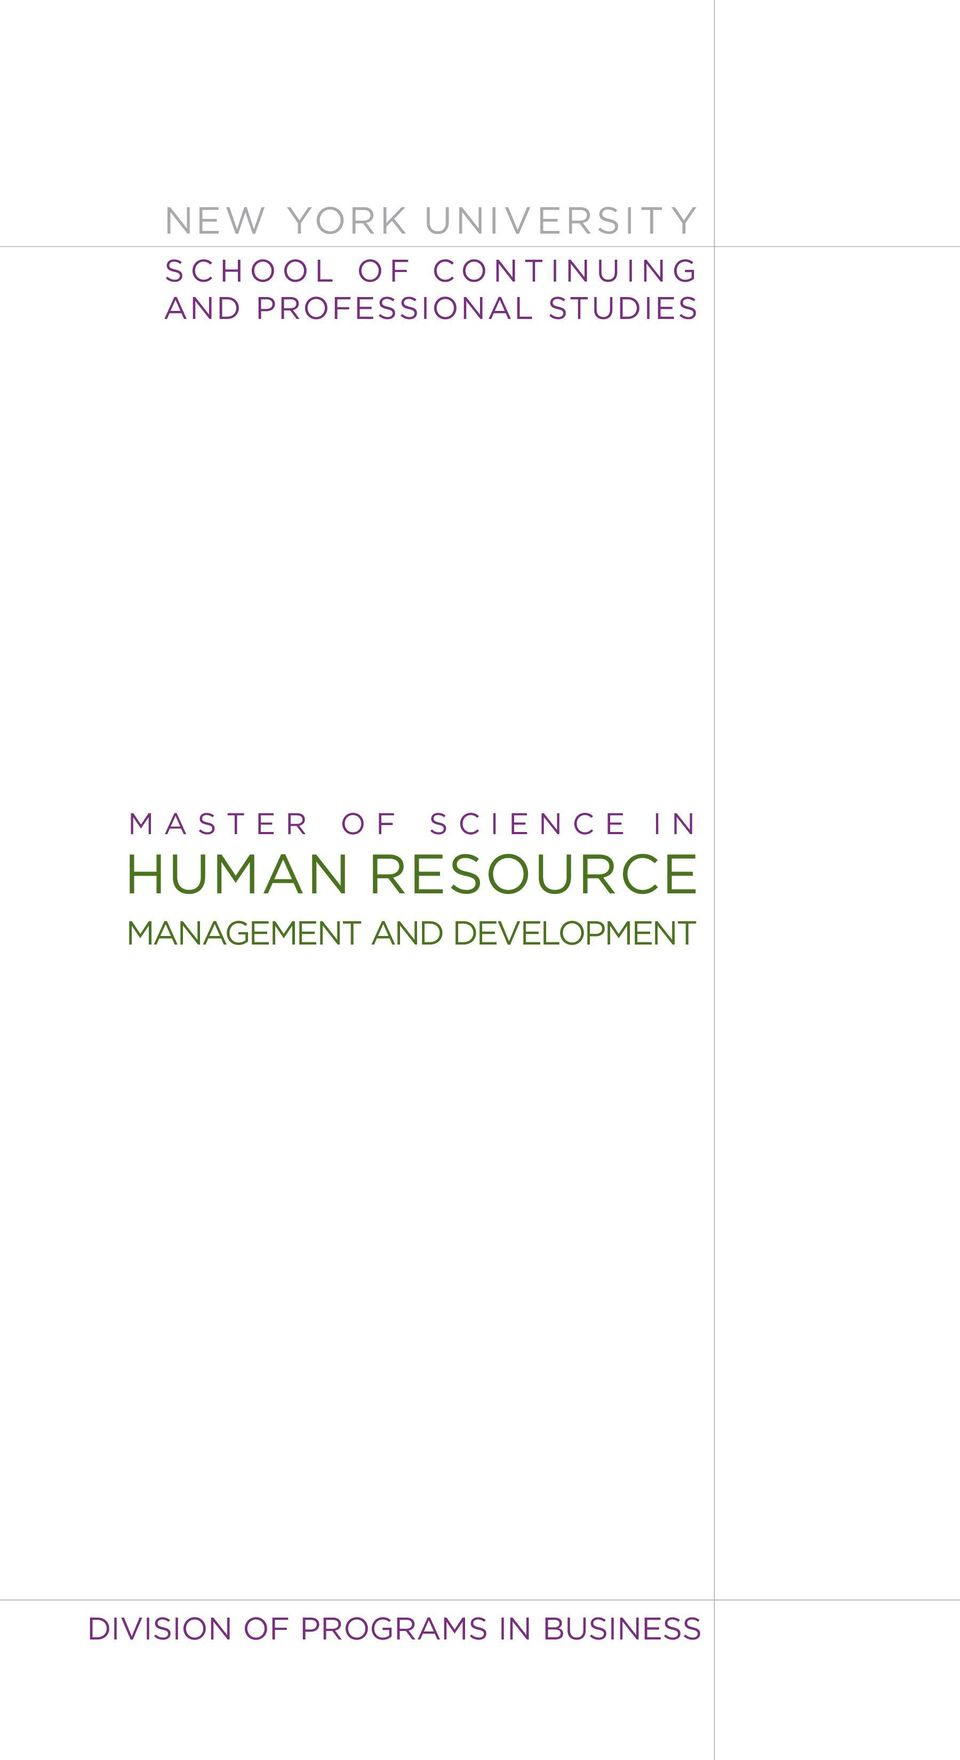 SCIENCE IN HUMAN RESOURCE MANAGEMENT AND